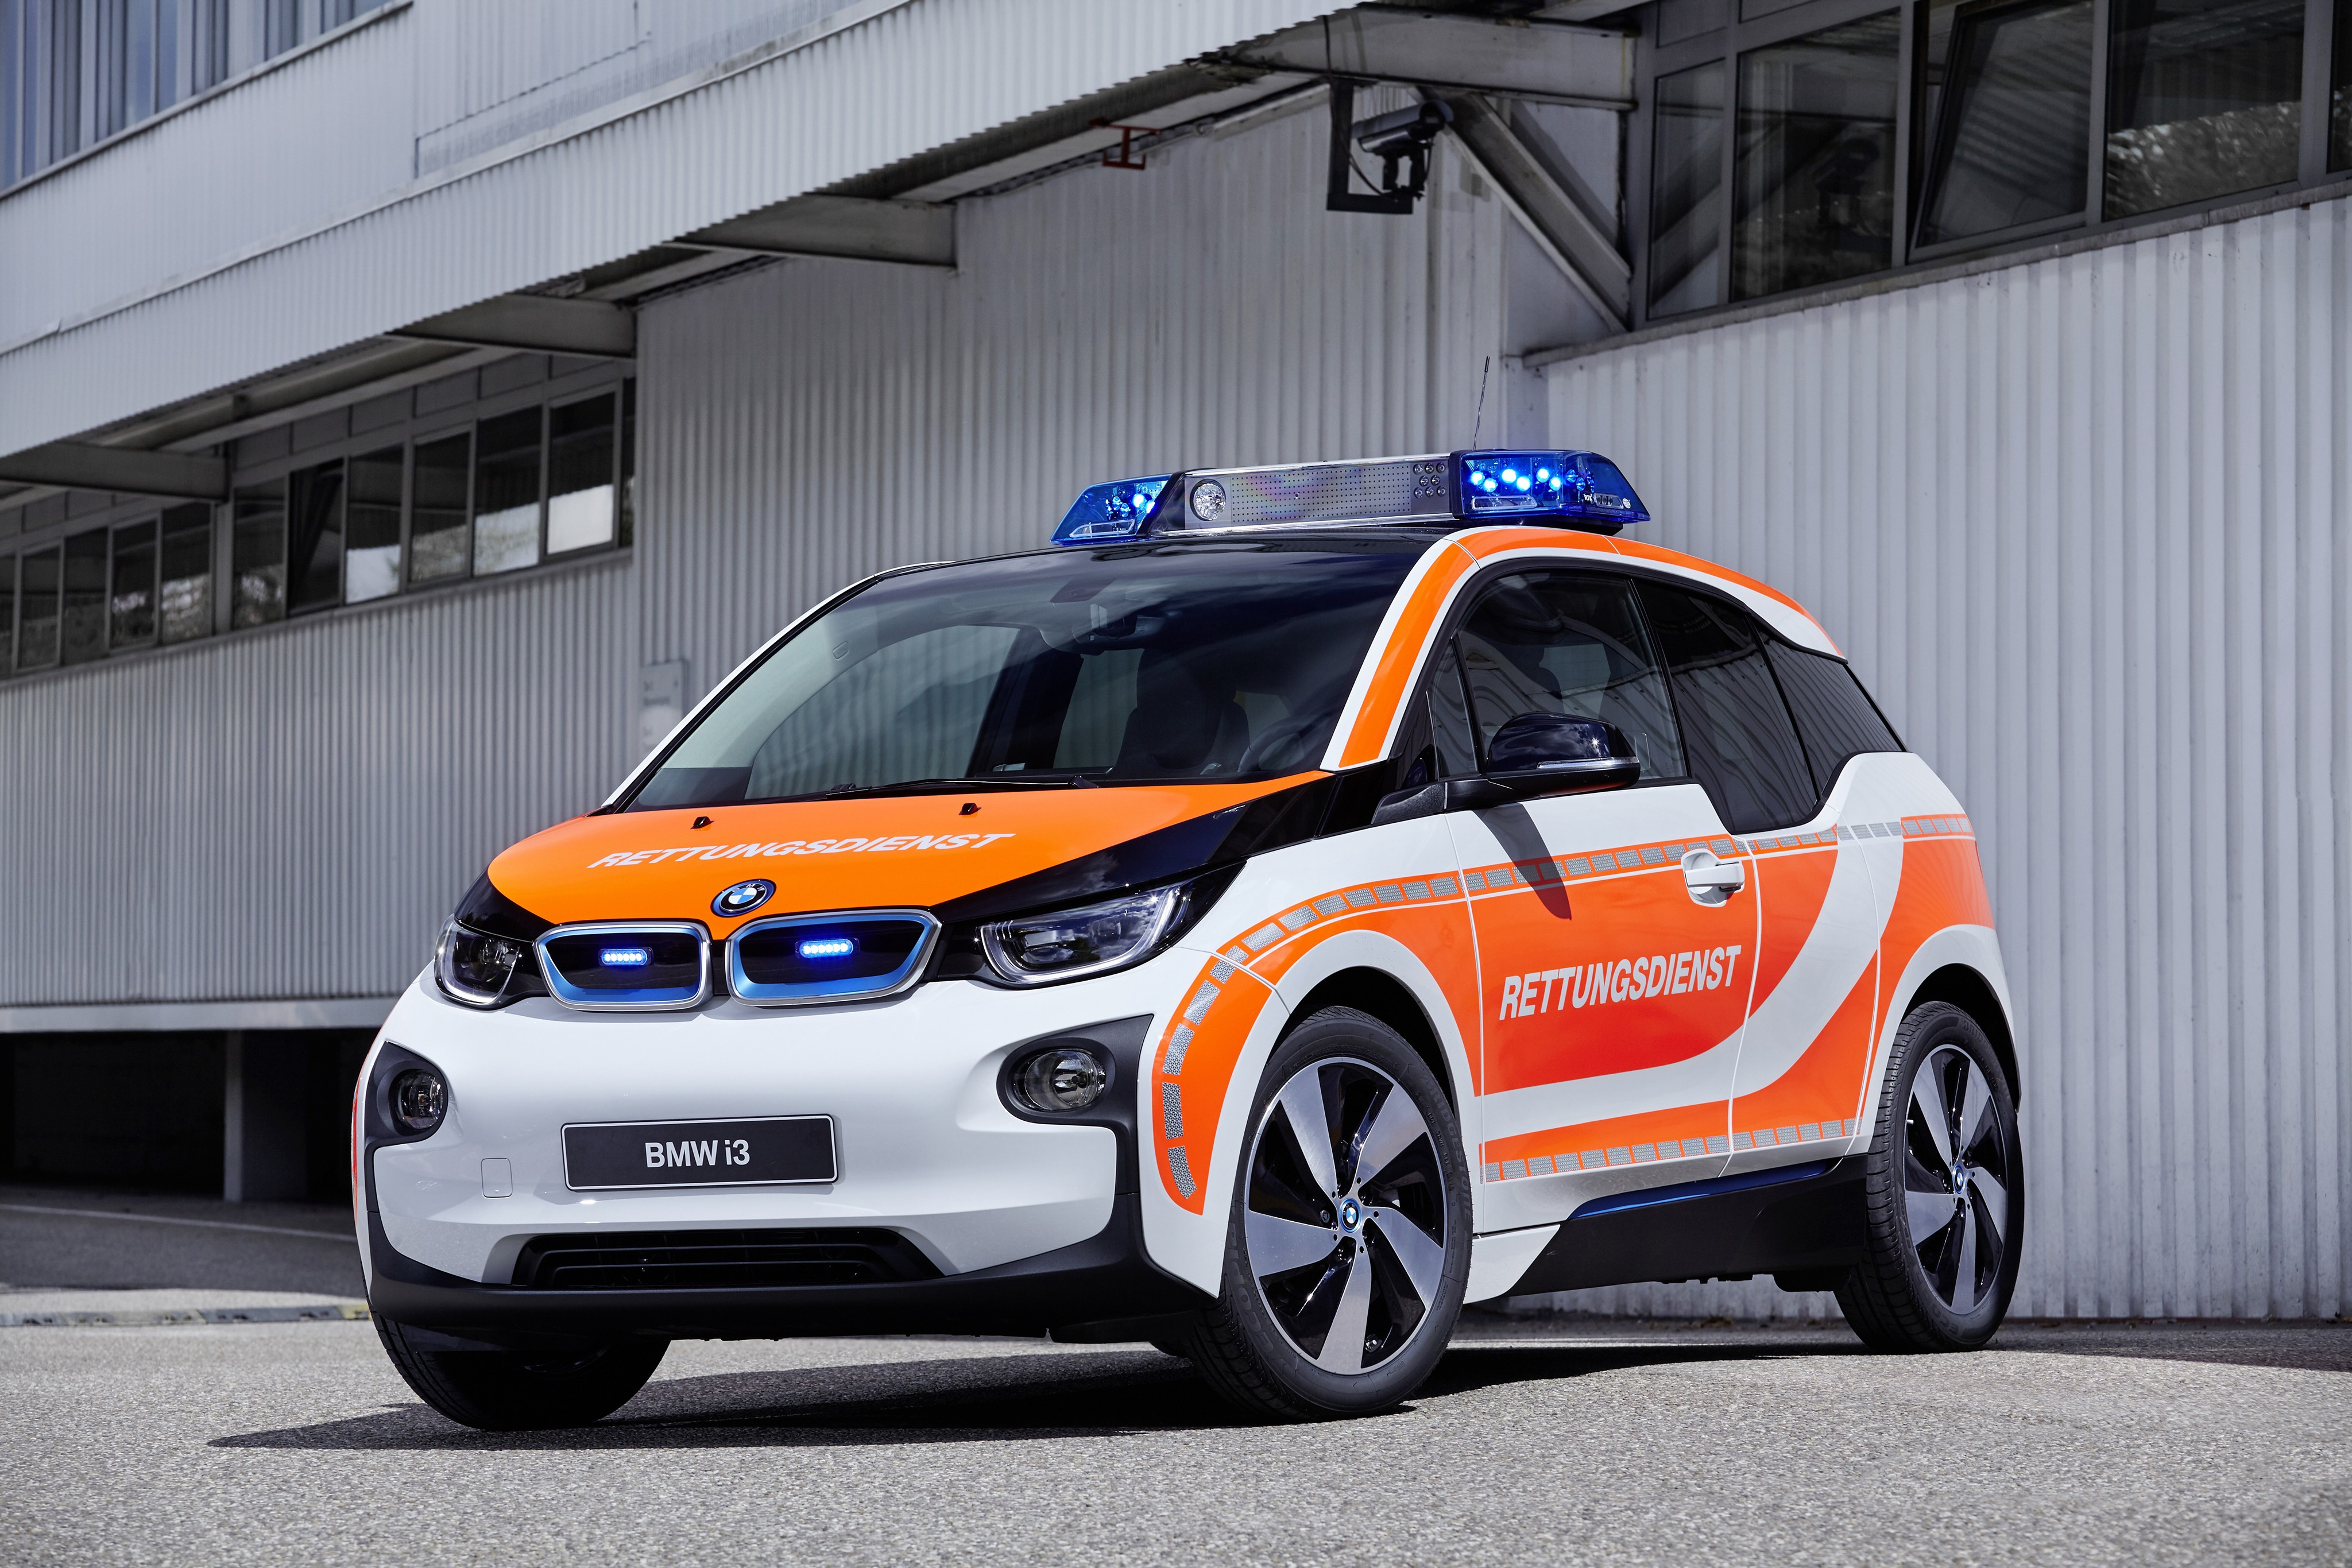 Wallpaper Bmw I3 Electric Cars Rettmobil 2016 Safety